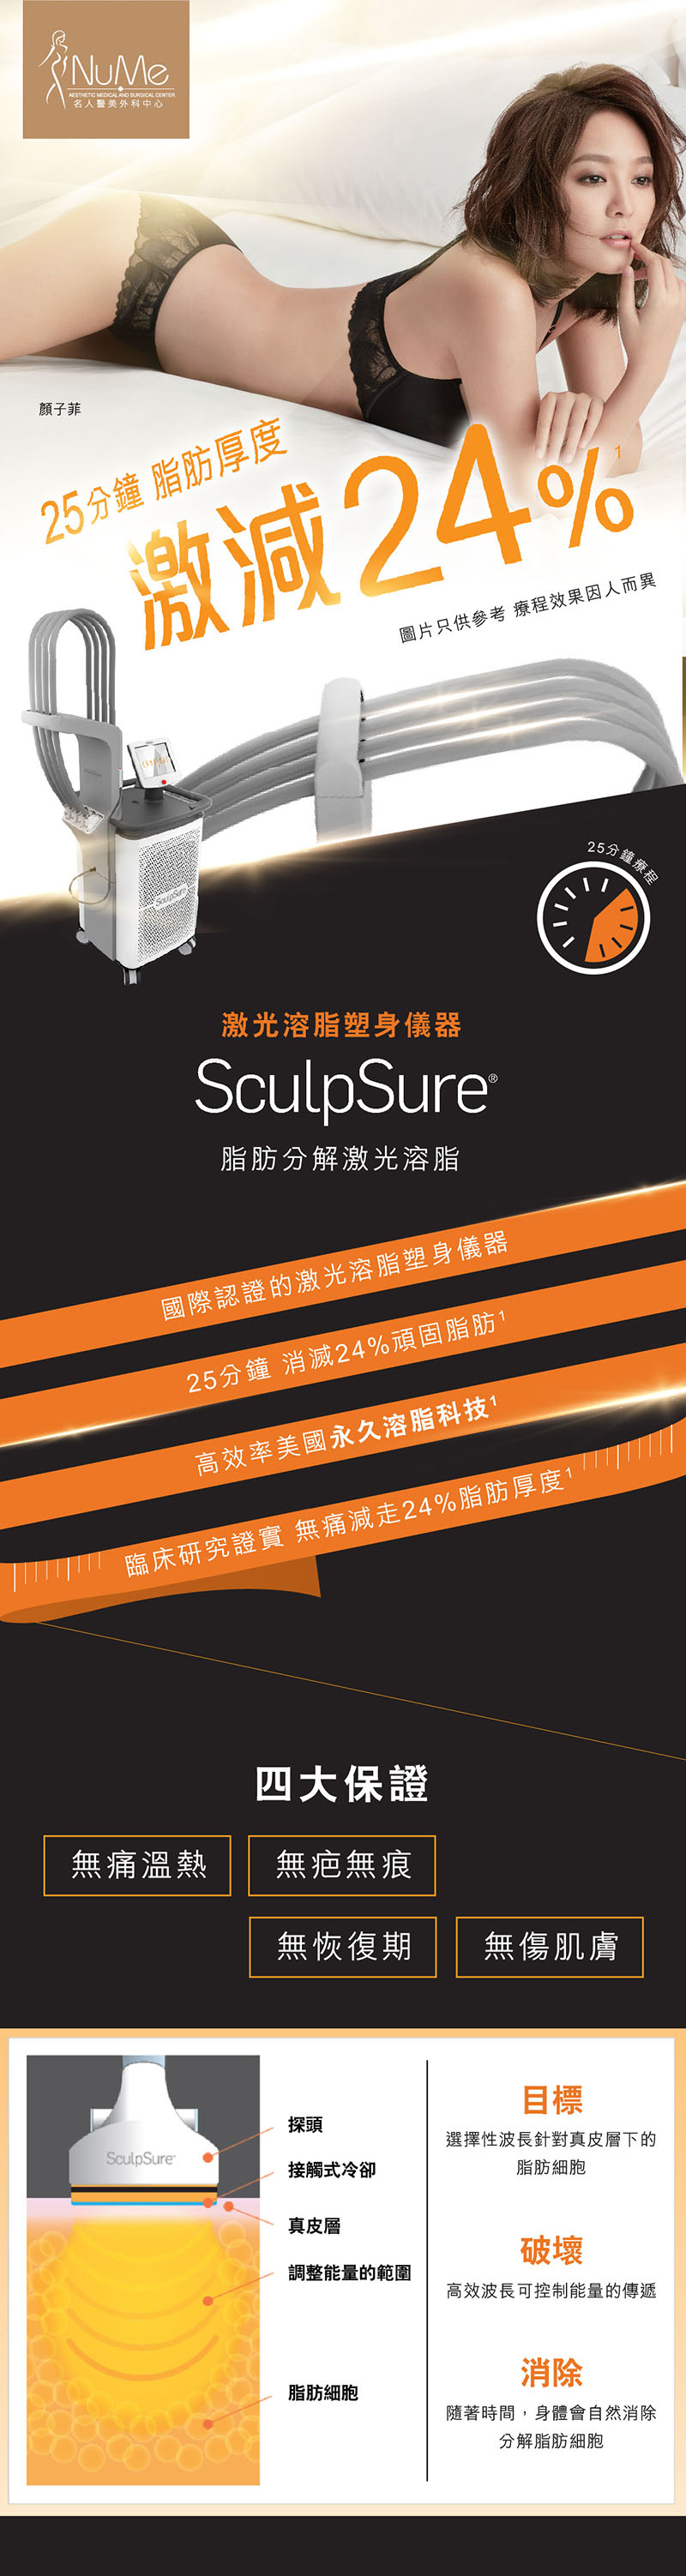 NuMe Google Landing Page - SculpSure-01.jpg